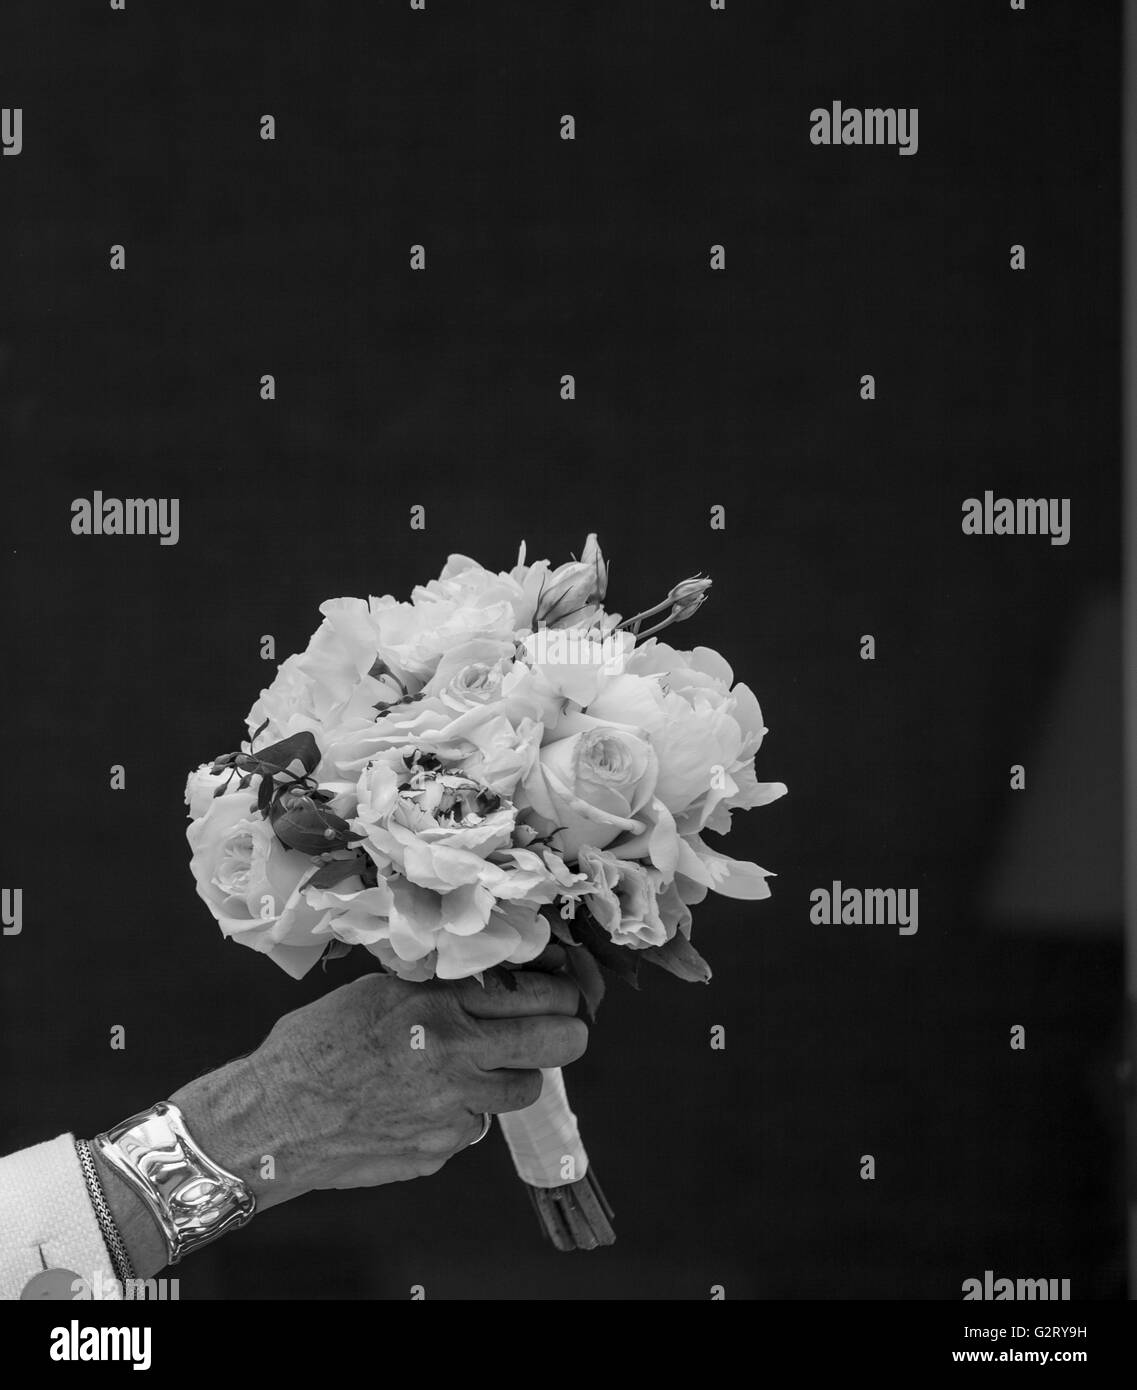 bouquet of fresh cut flowers in black and white held in a woman's hand with a black background - Stock Image